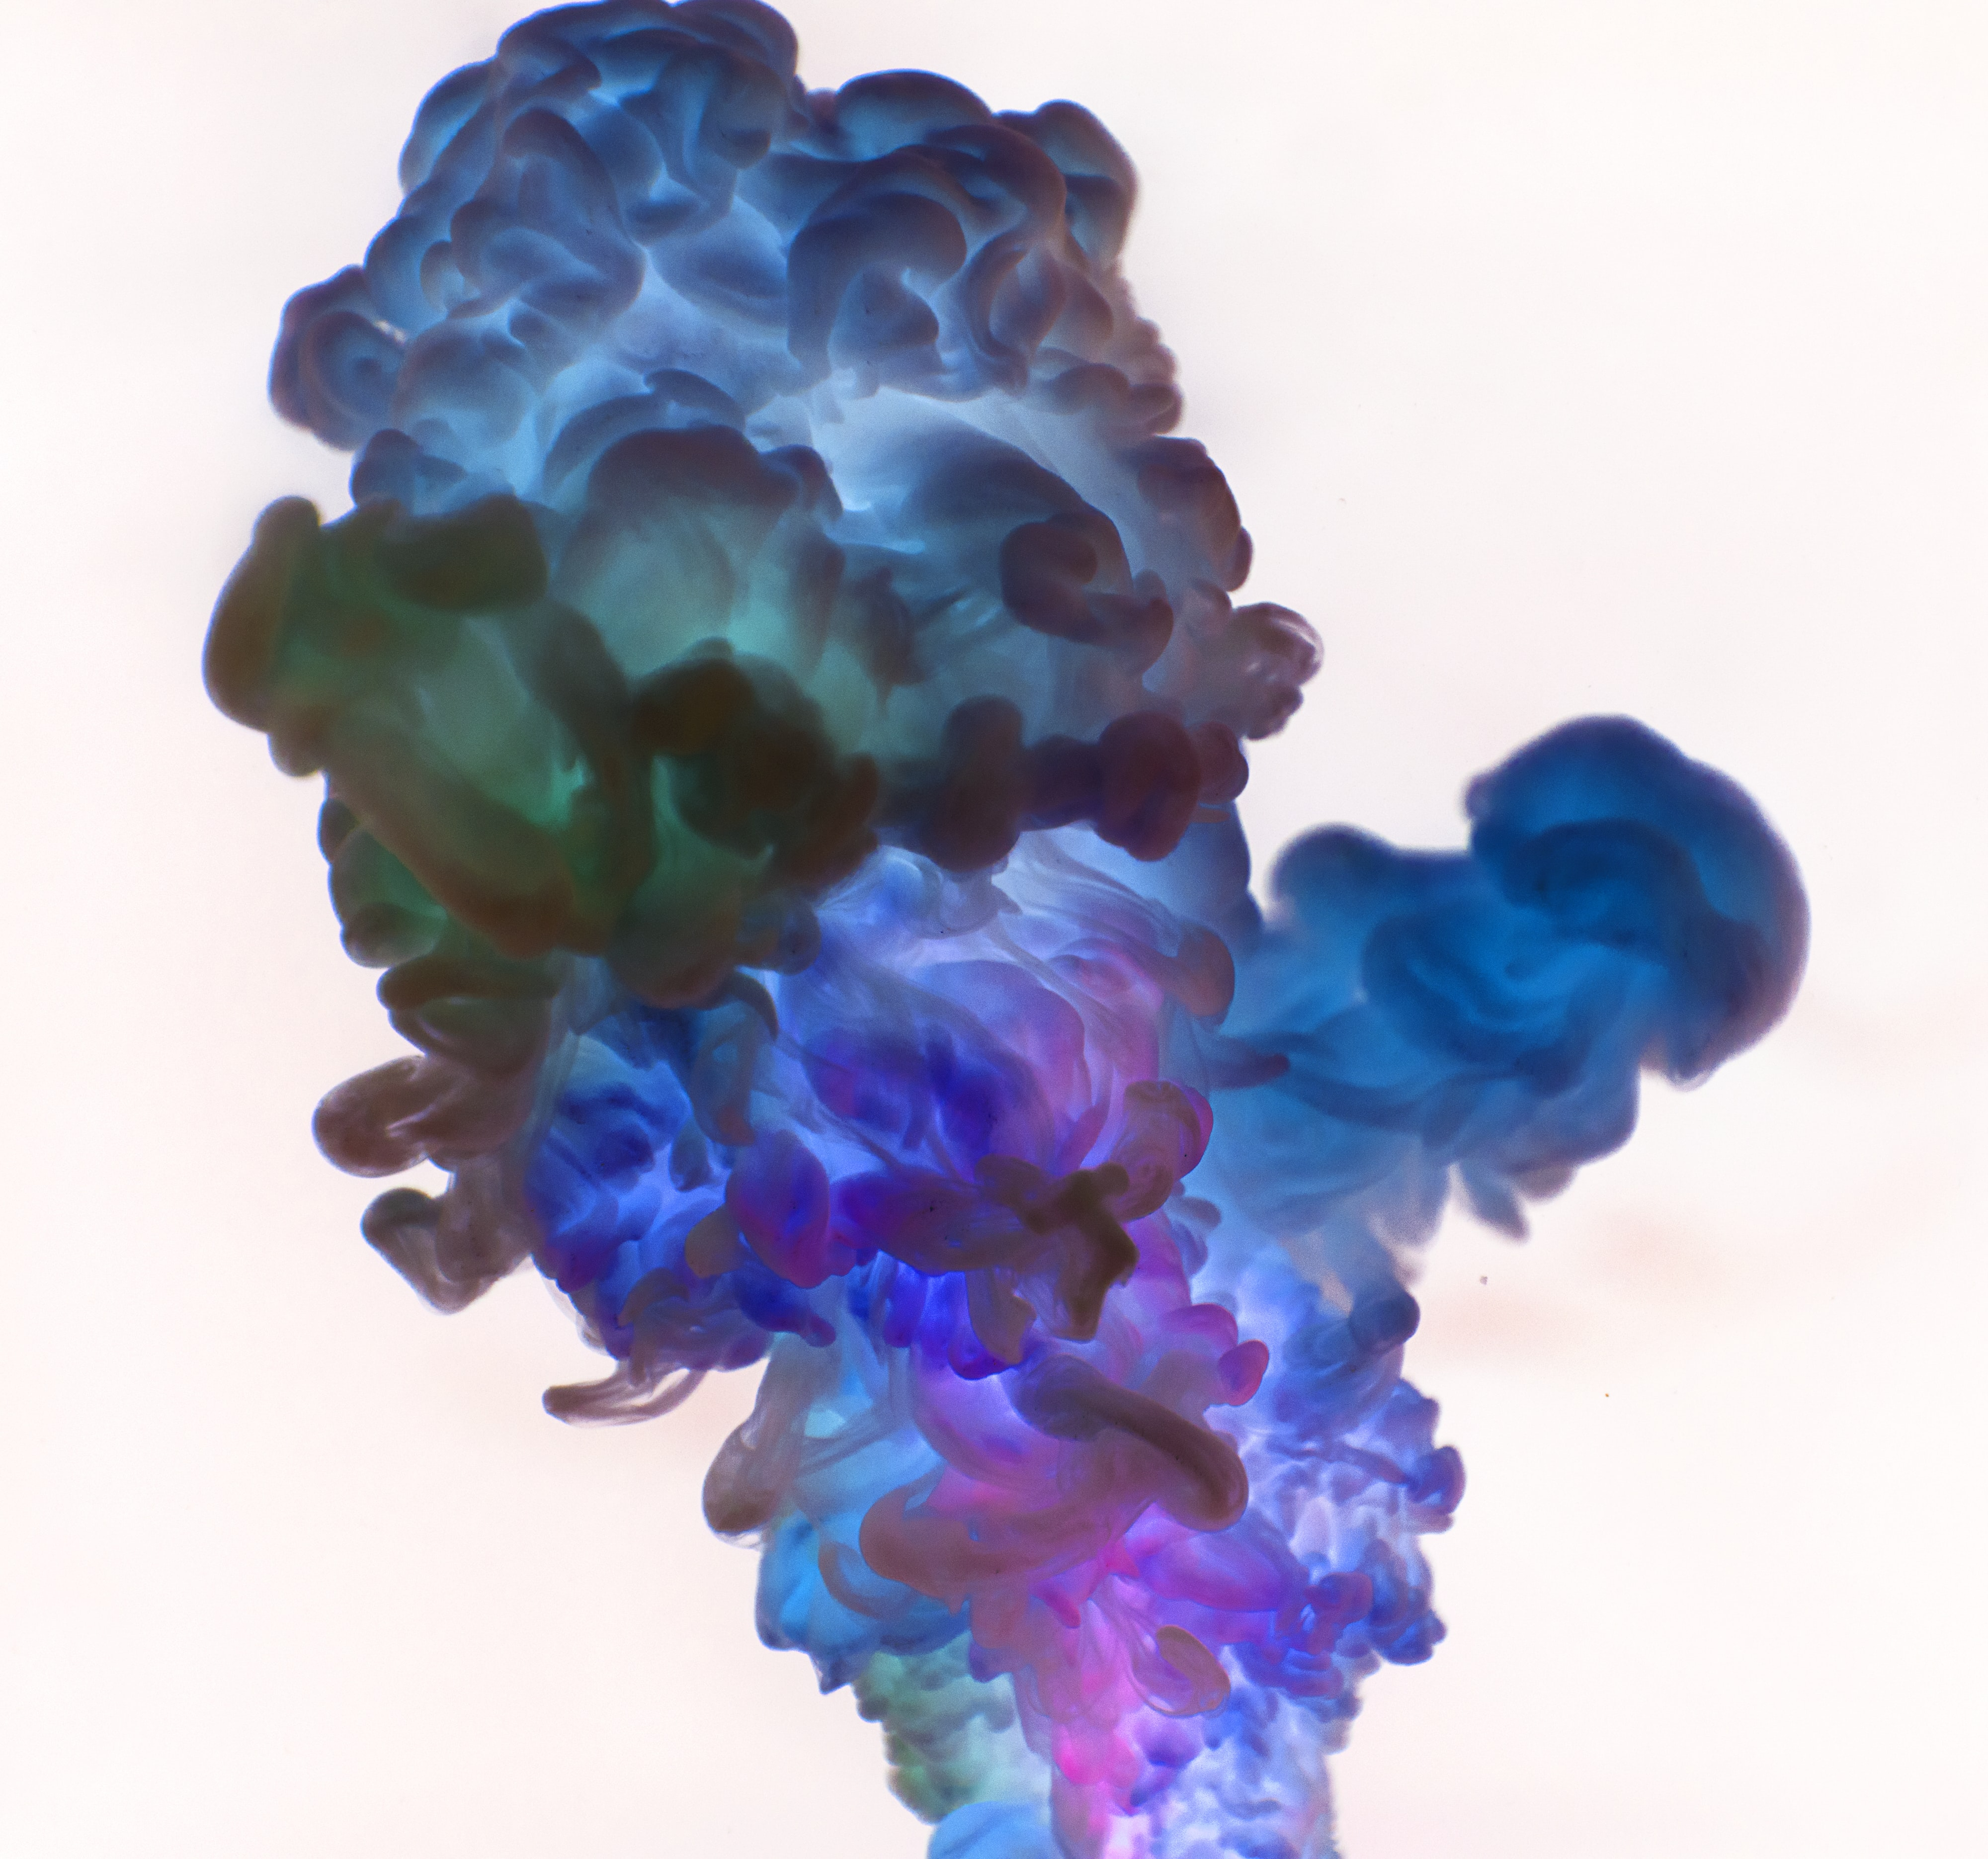 blue and purple smoke wallpaper